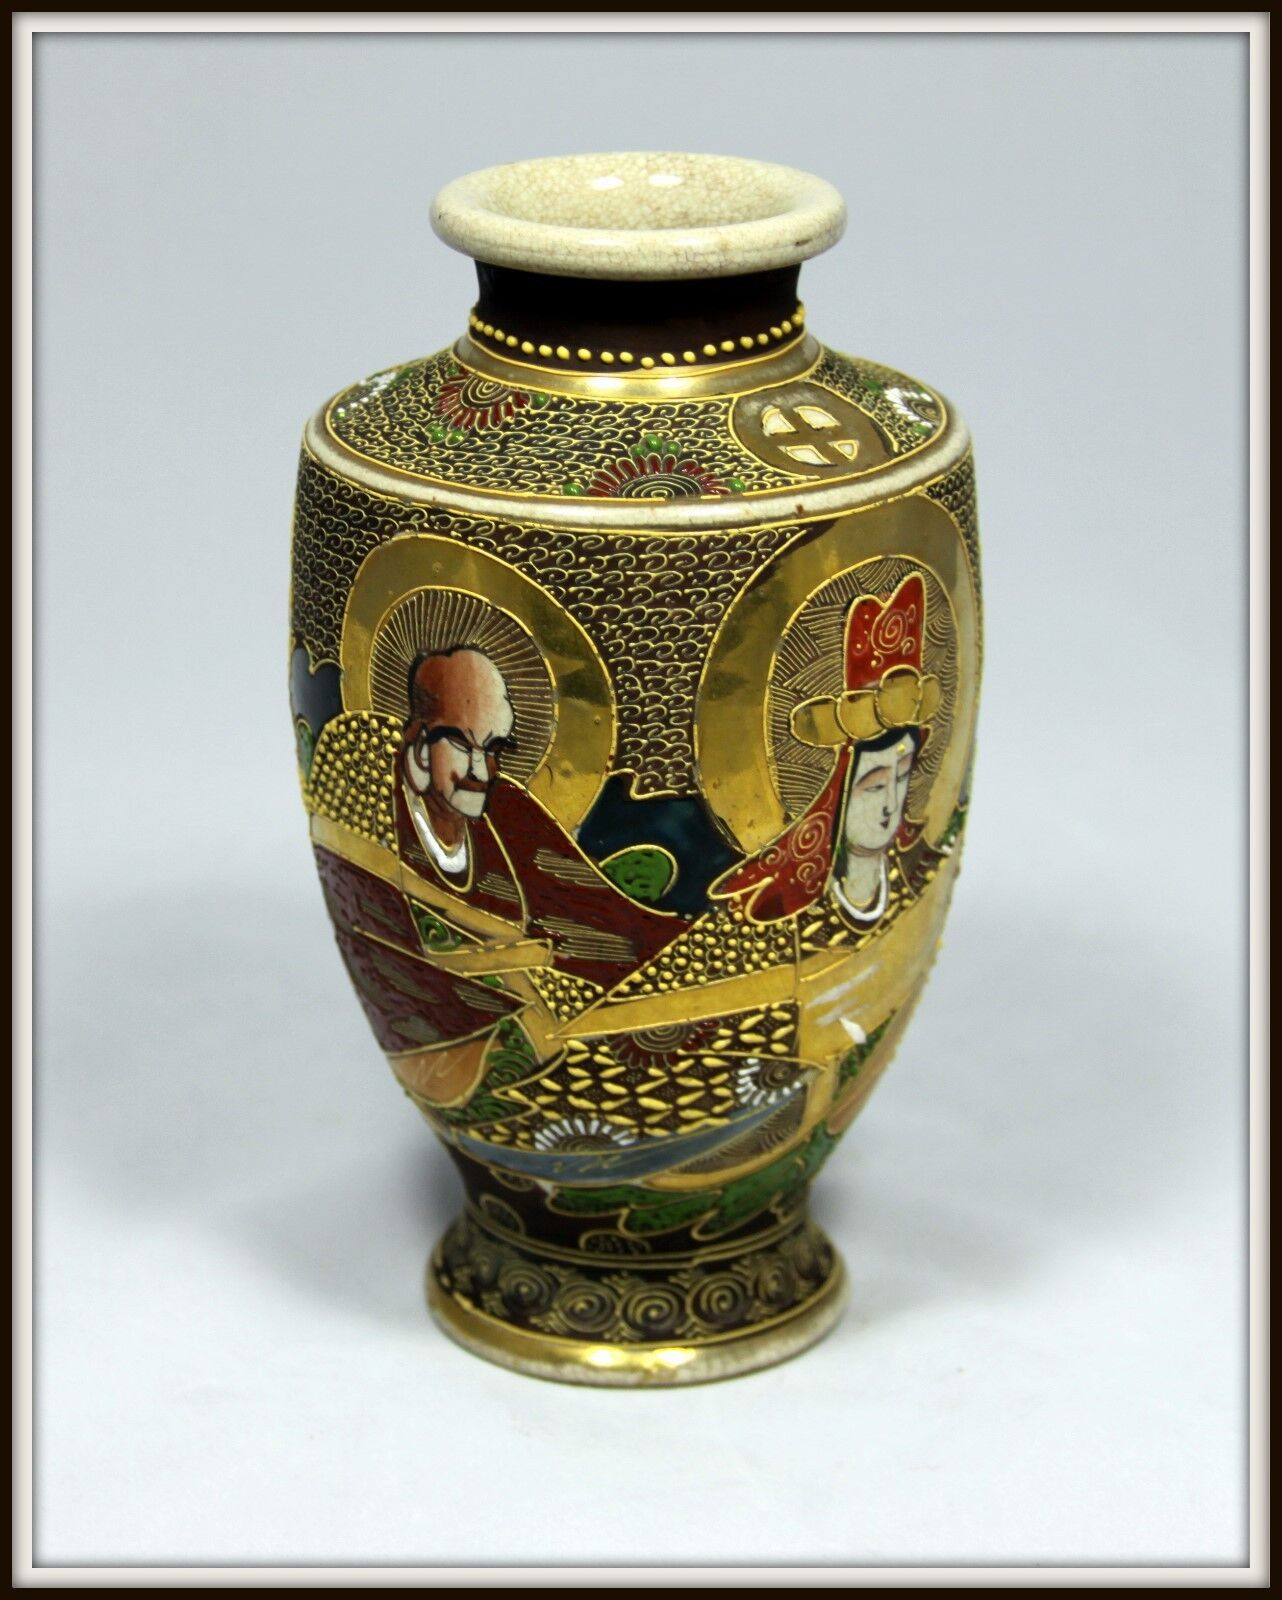 Japanese asianoriental antiques antiques meji period hand crafted antique japanese satsuma vase exquisite reviewsmspy